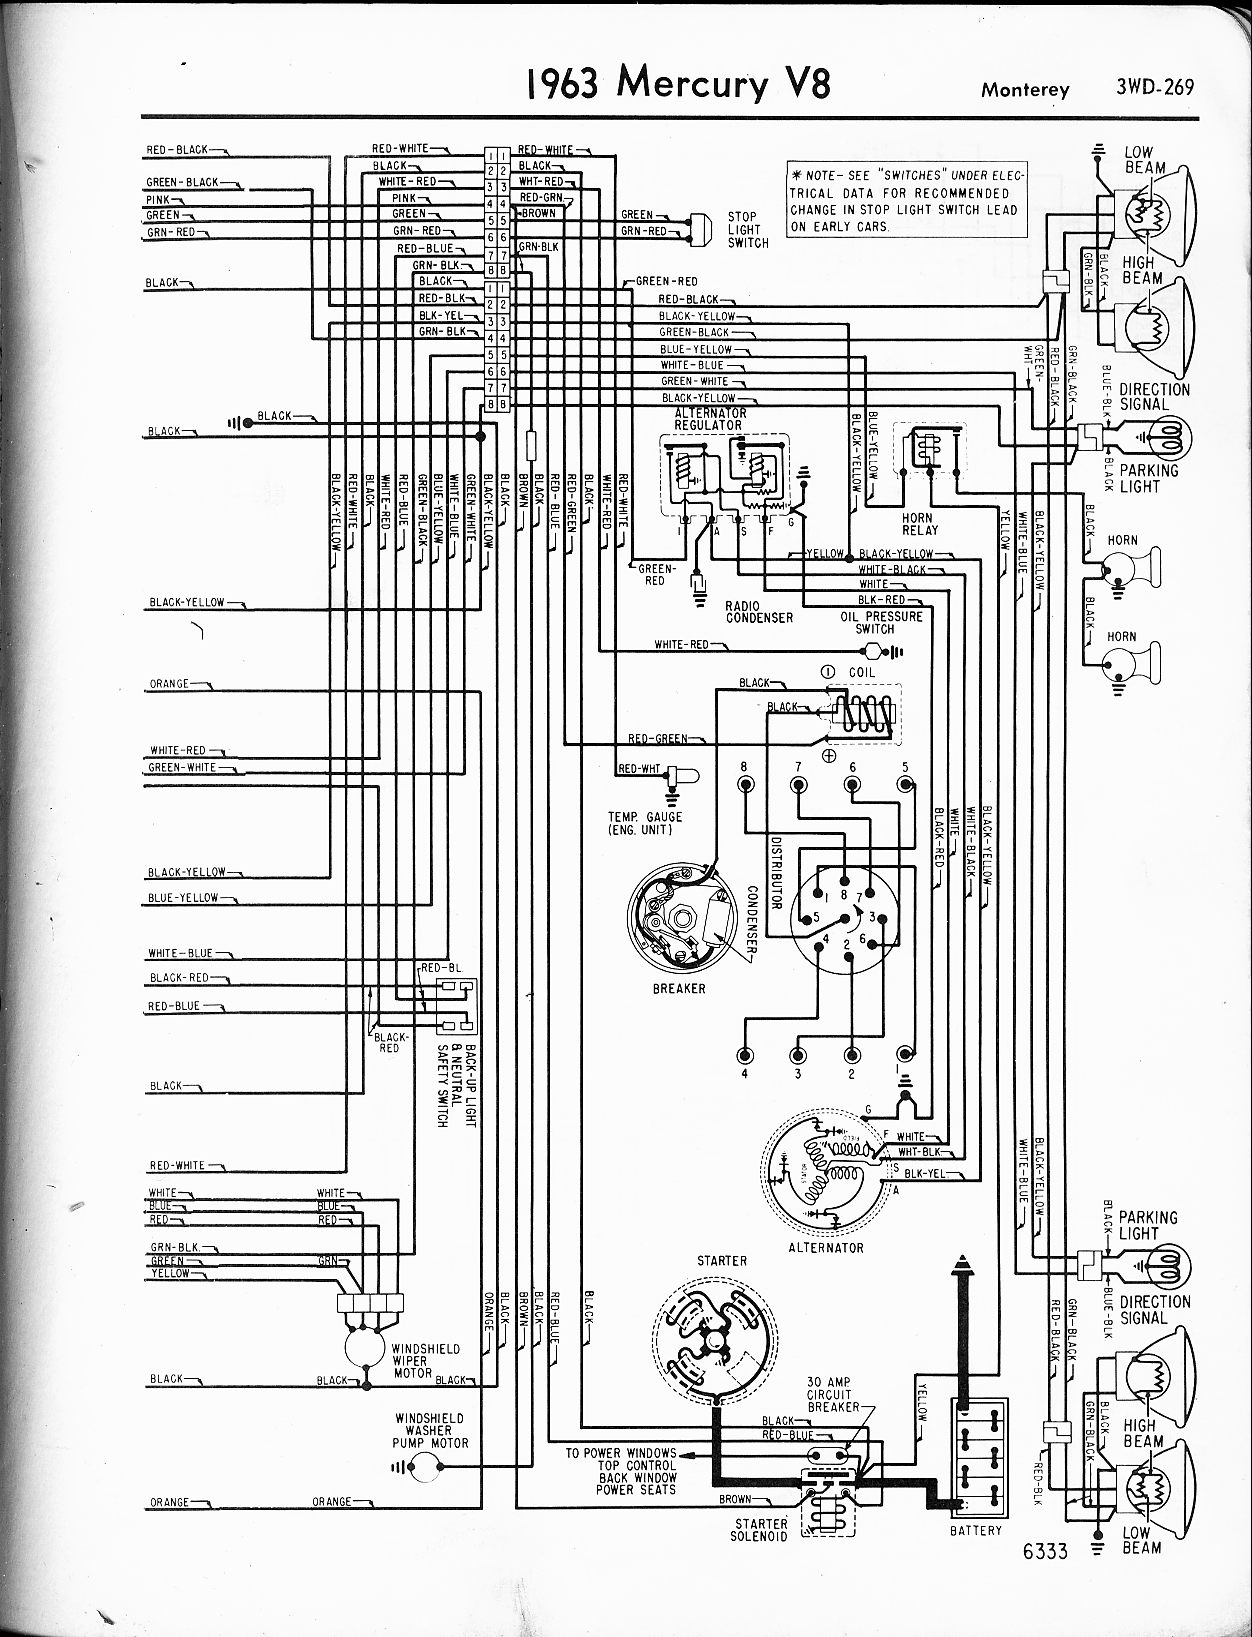 1963 mercury et wiring diagram online schematic diagram u2022 rh holyoak co